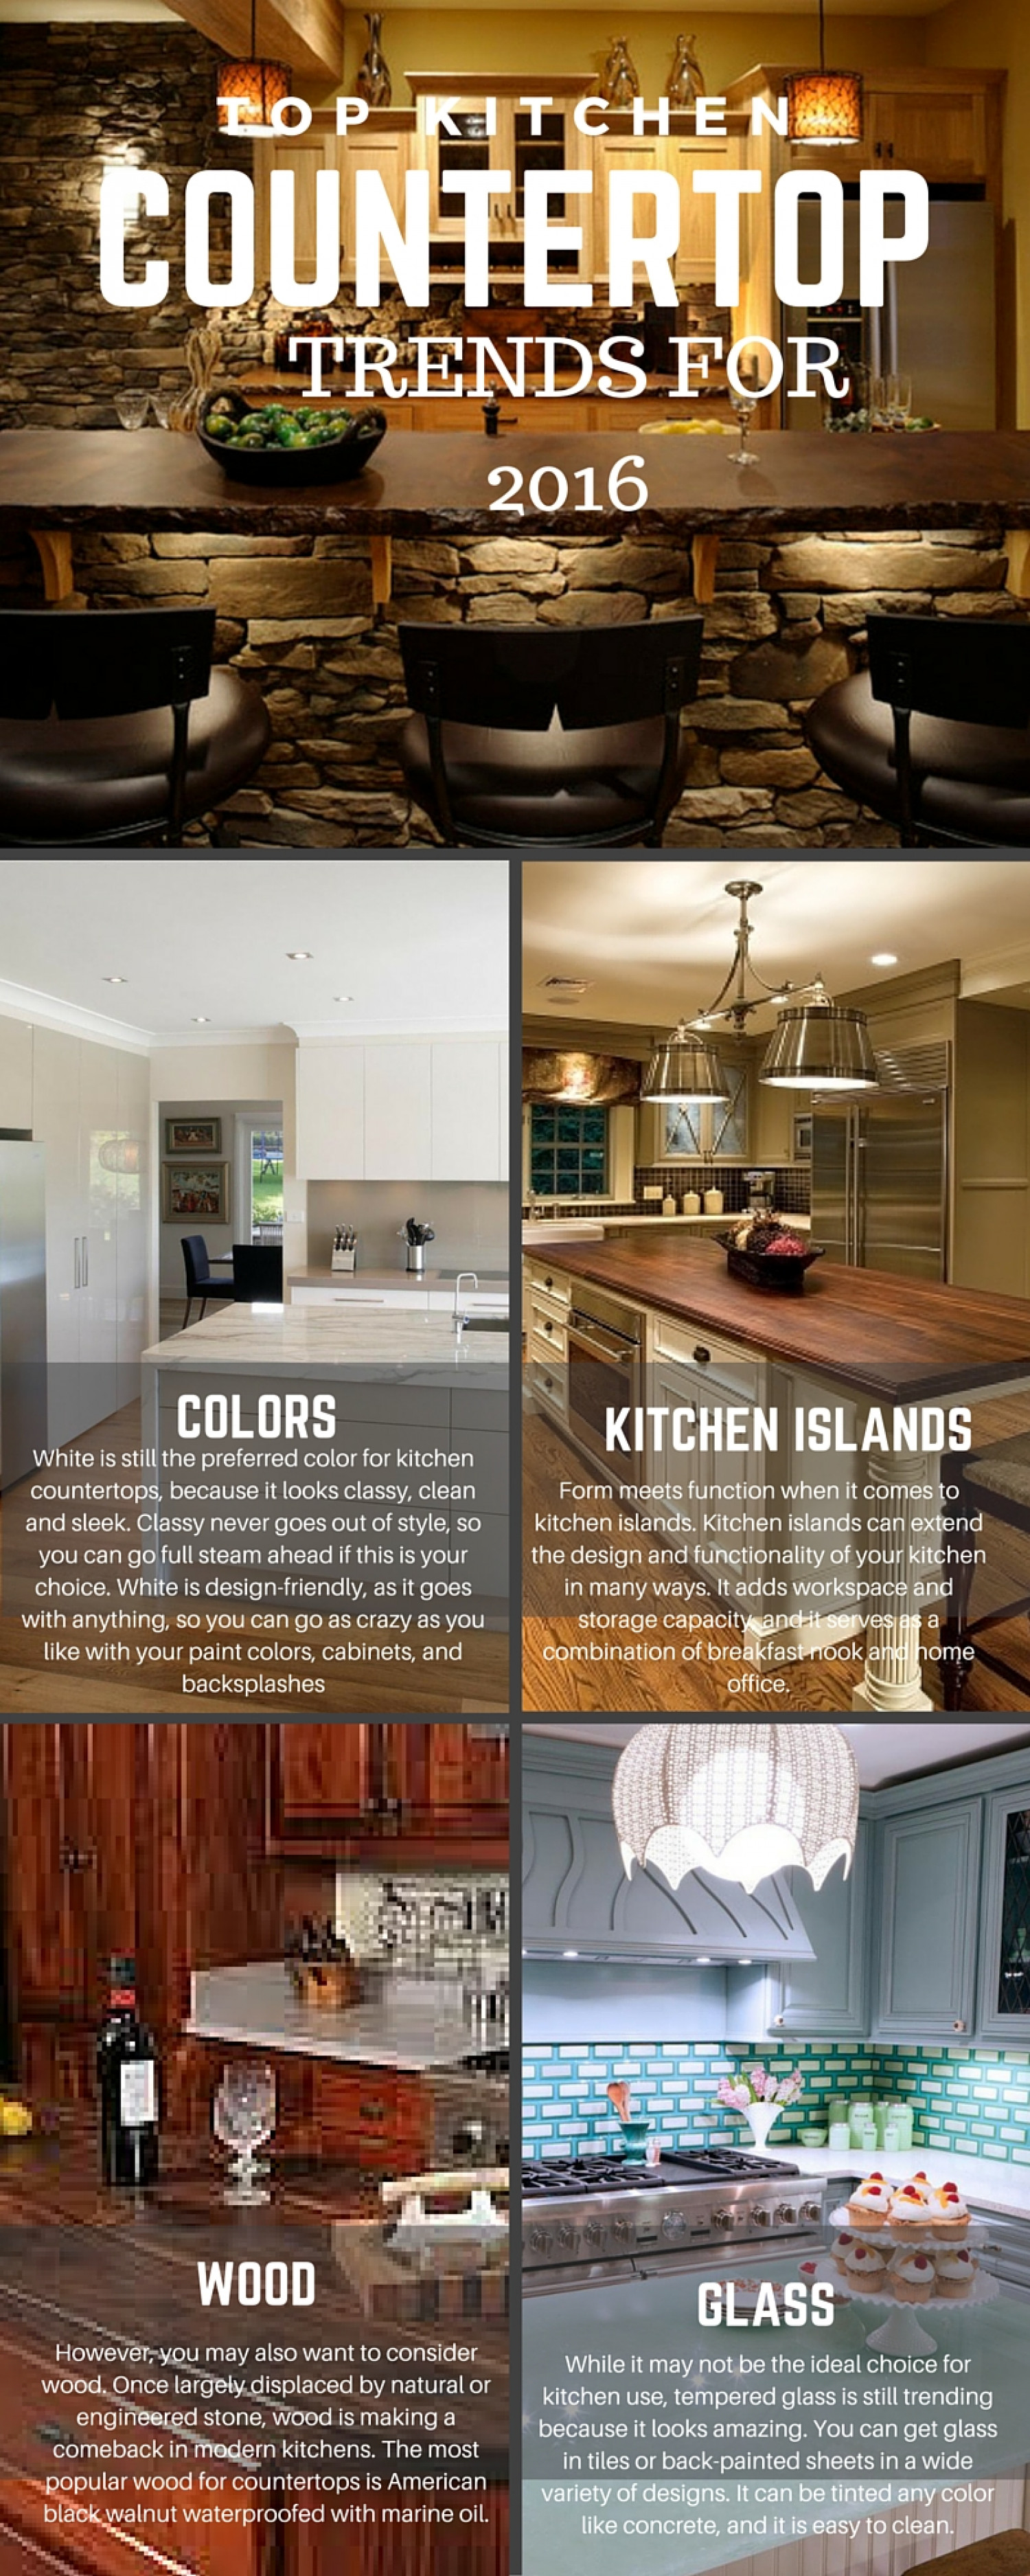 Top Kitchen Countertop Trends For 2016 Infographic